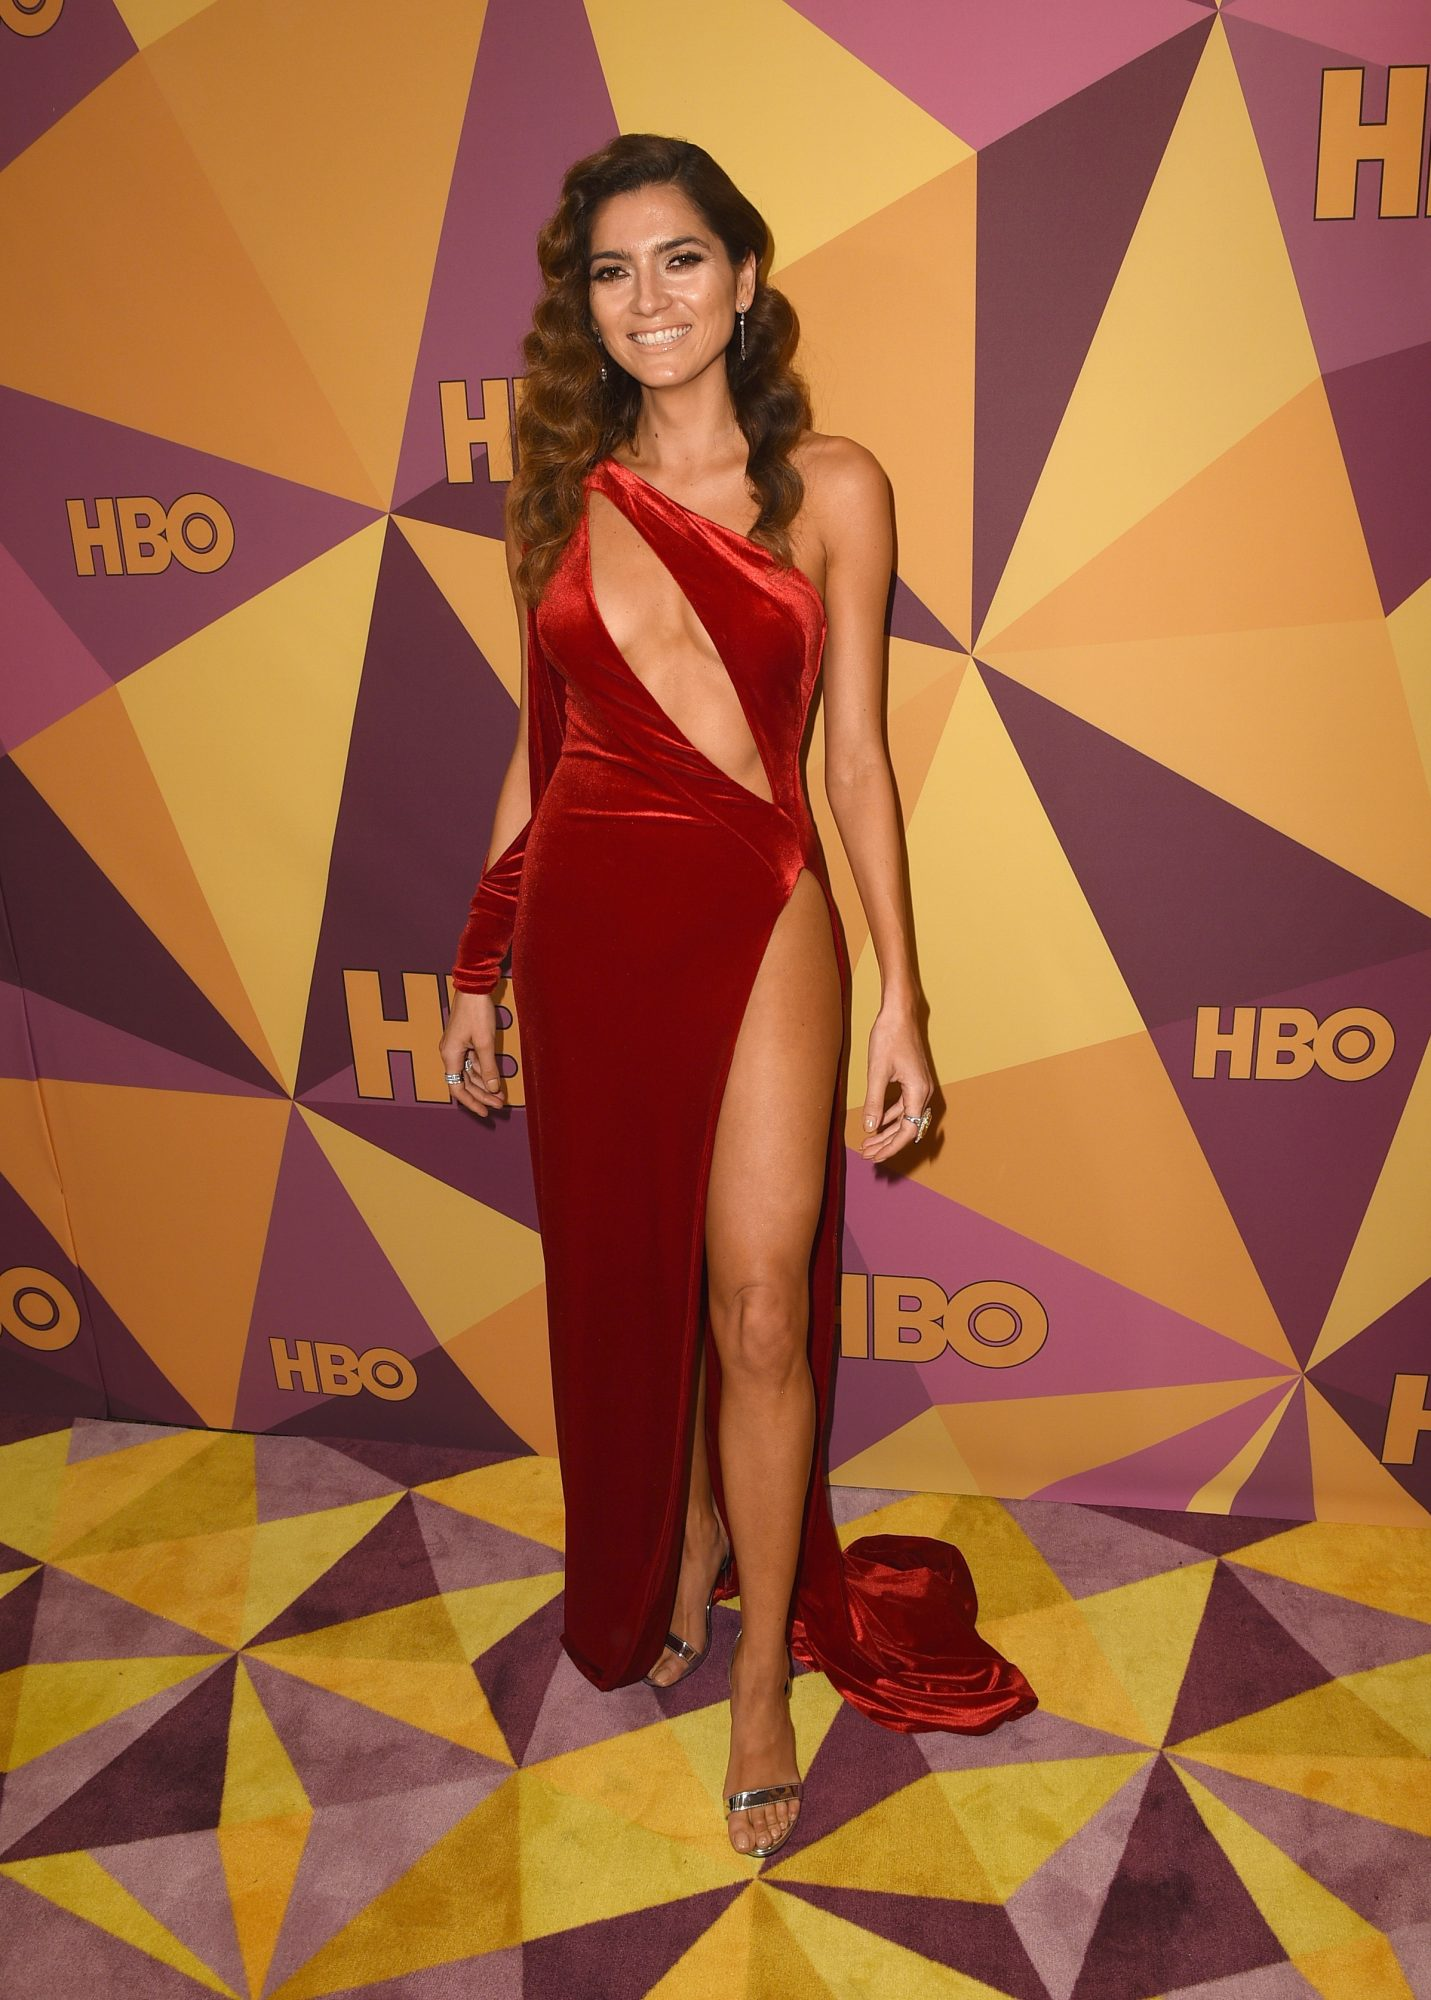 Blanca Blanco Responds to Criticism for Wearing Red to Golden Globes: 'The Issue Is Bigger Than My Dress Color'